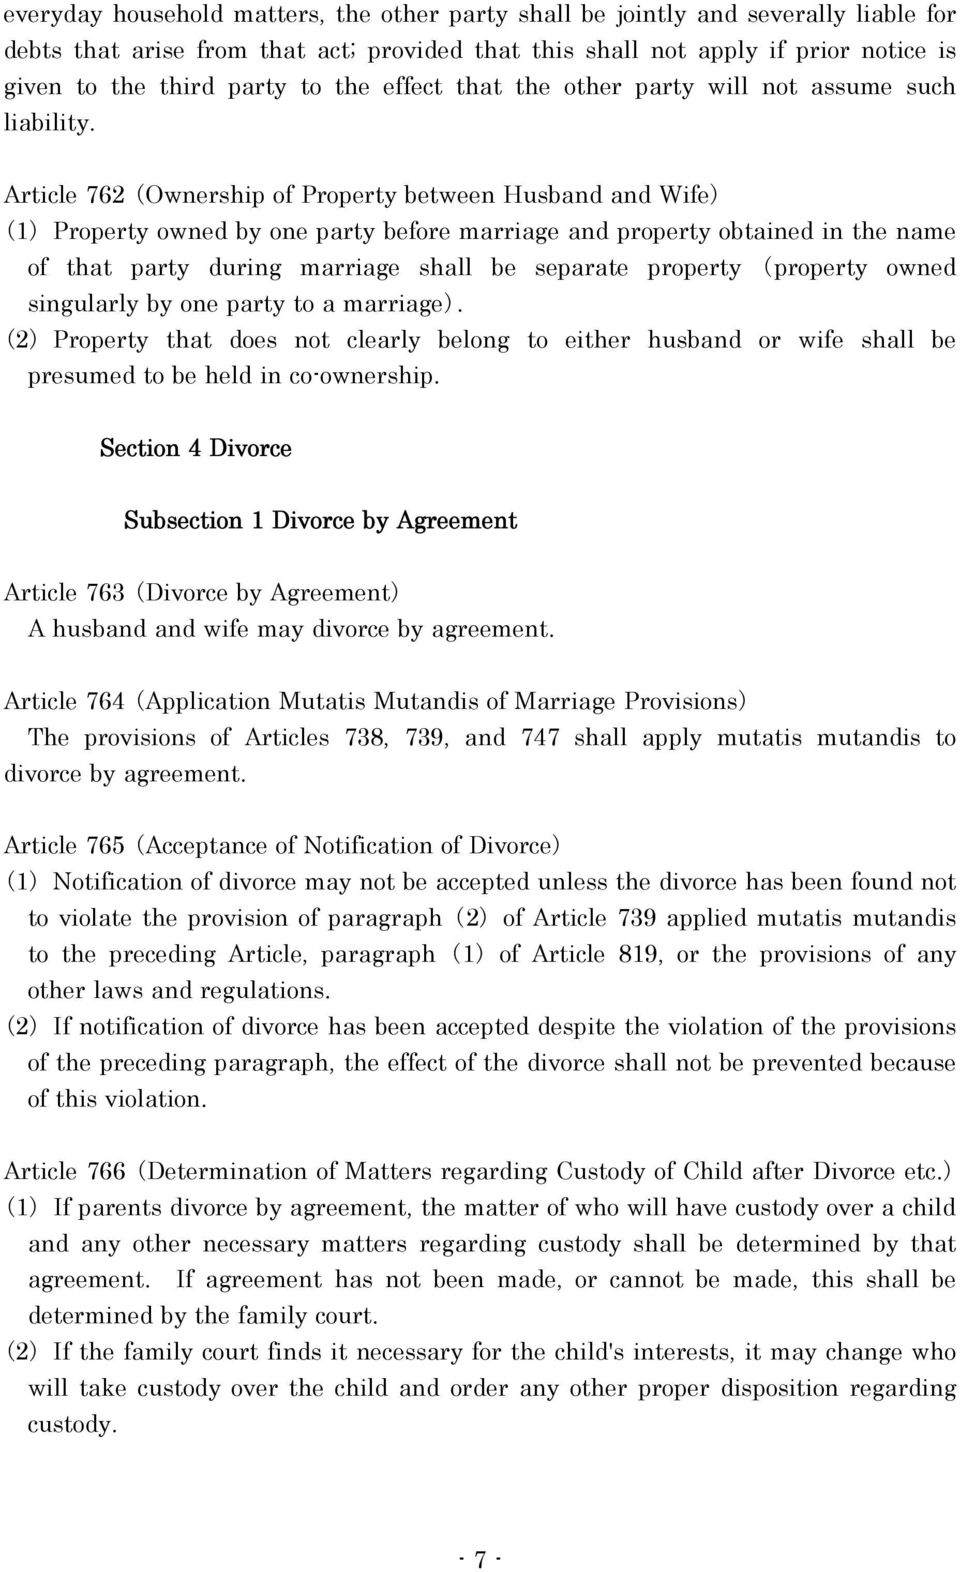 Article 762 ( Ownership of Property between Husband and Wife) Property owned by one party before marriage and property obtained in the name of that party during marriage shall be separate property (